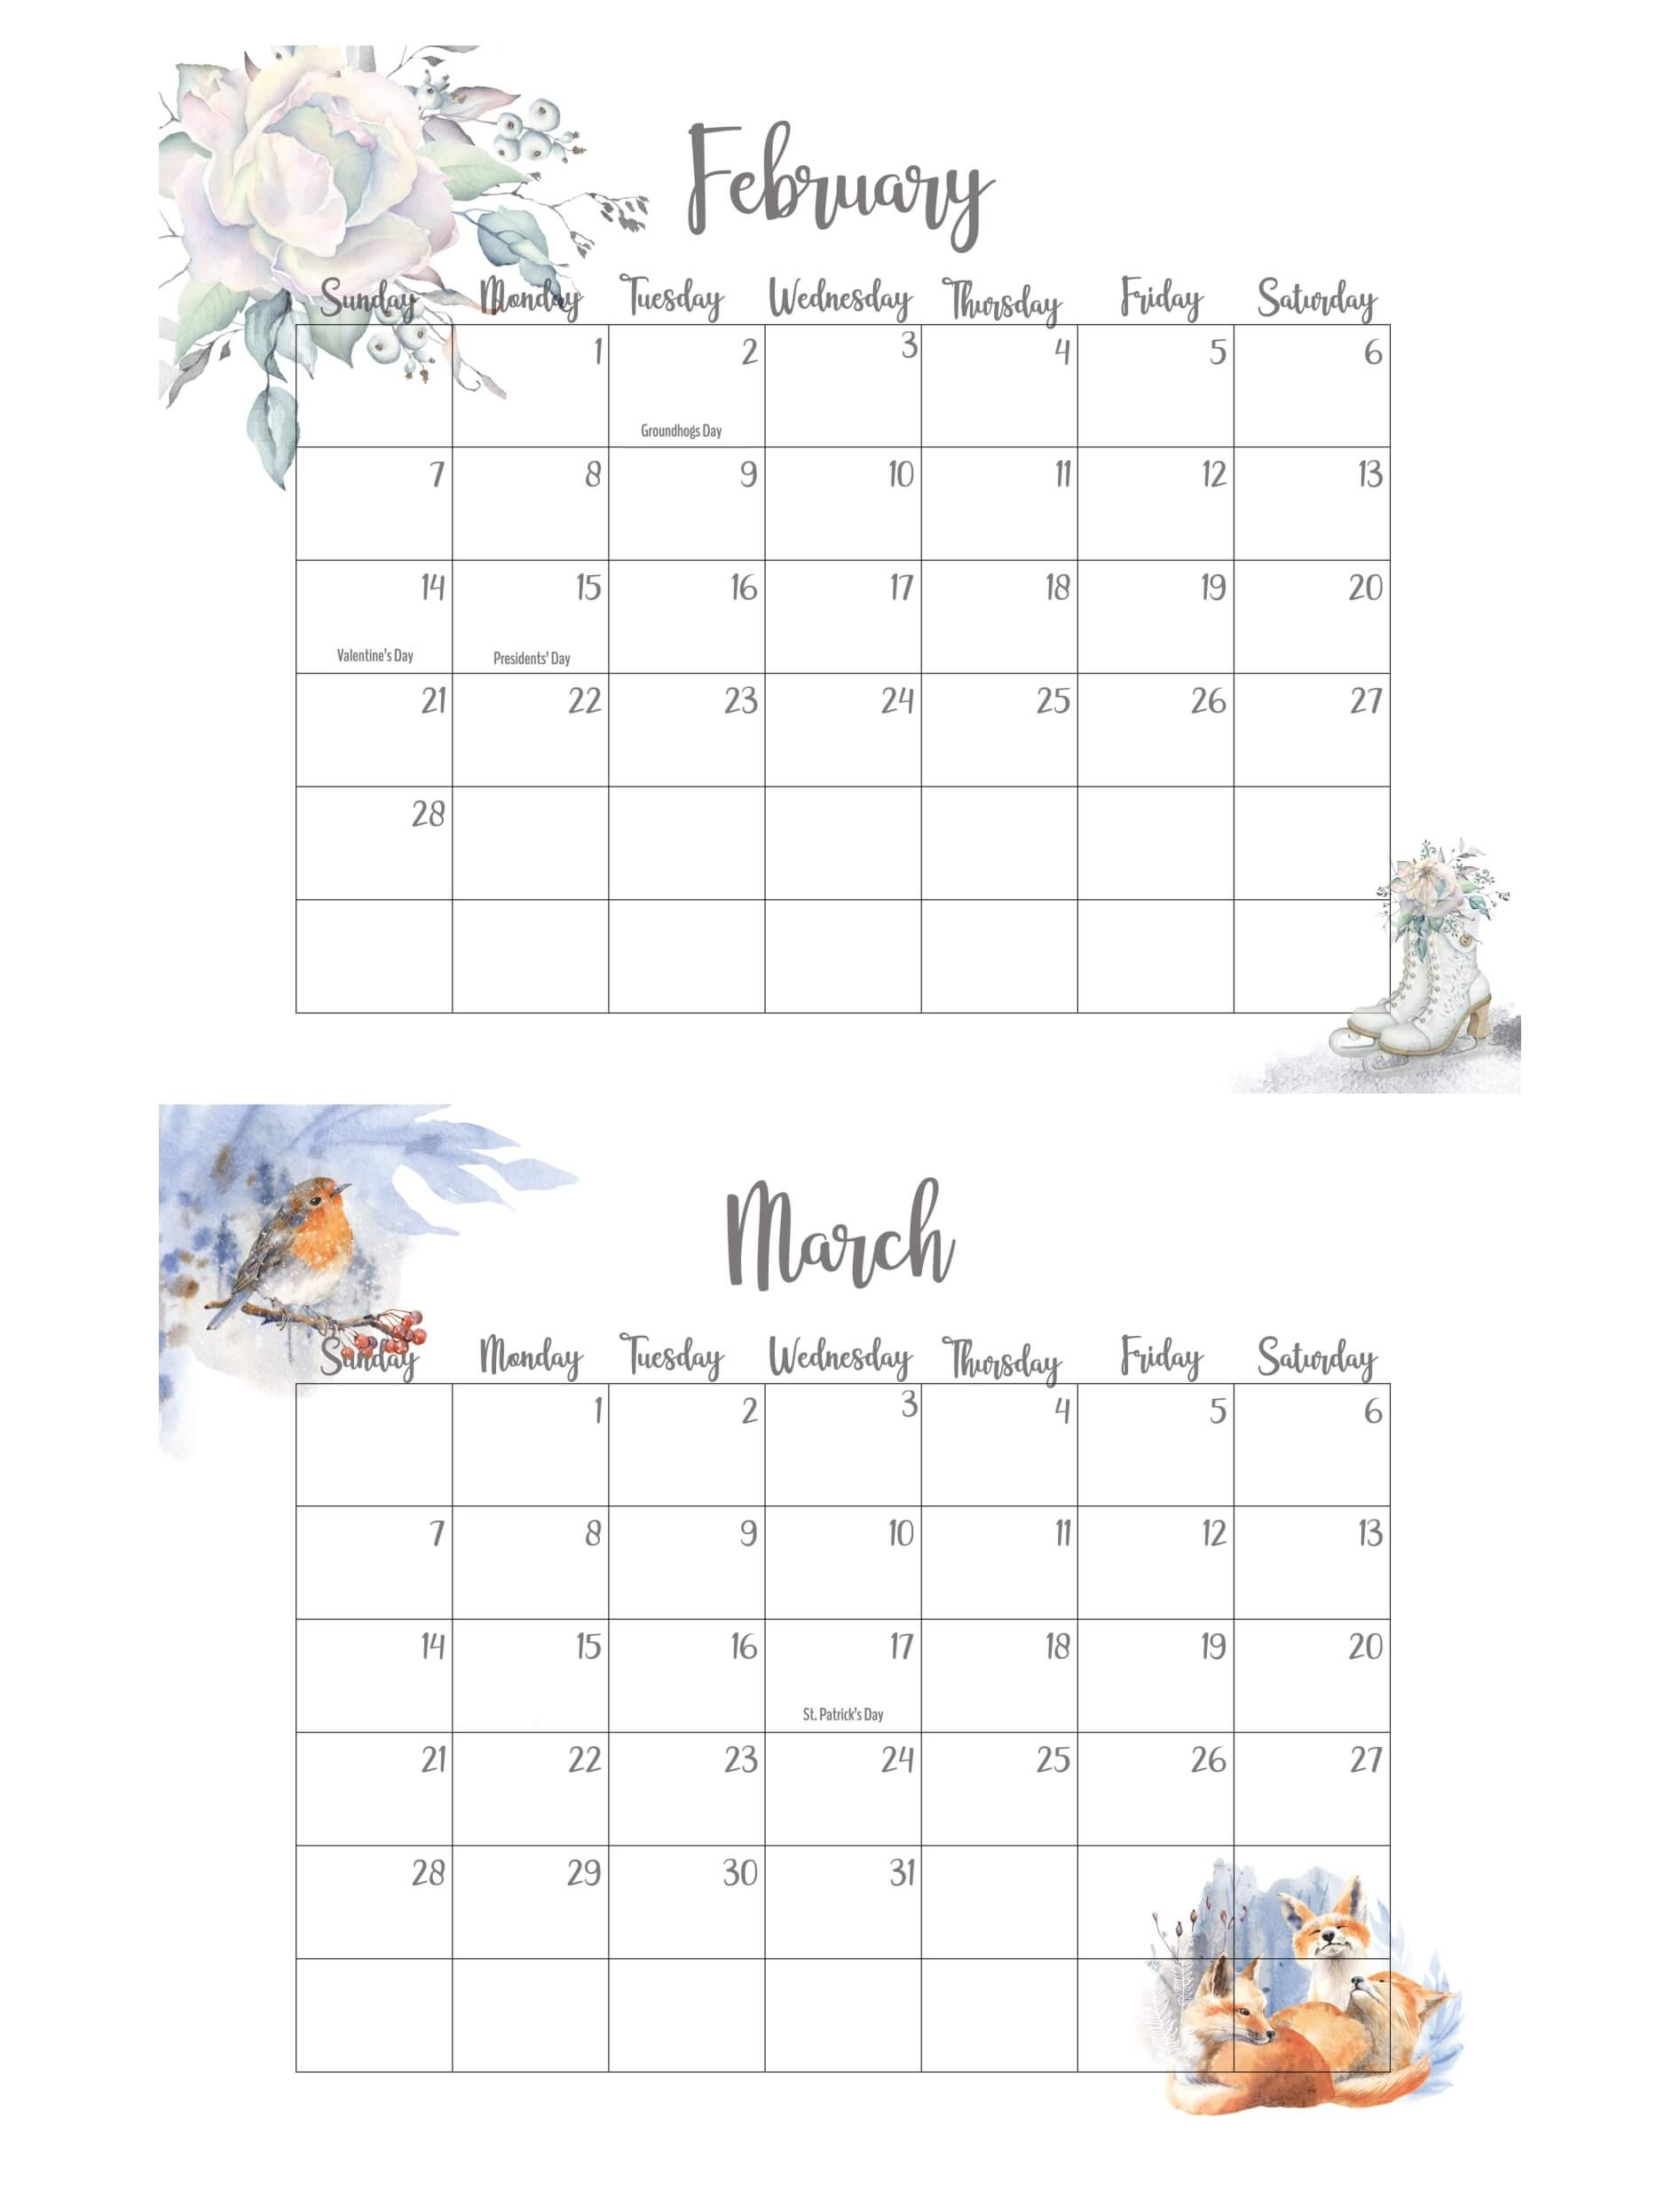 February March 2021 Calendar With Holidays